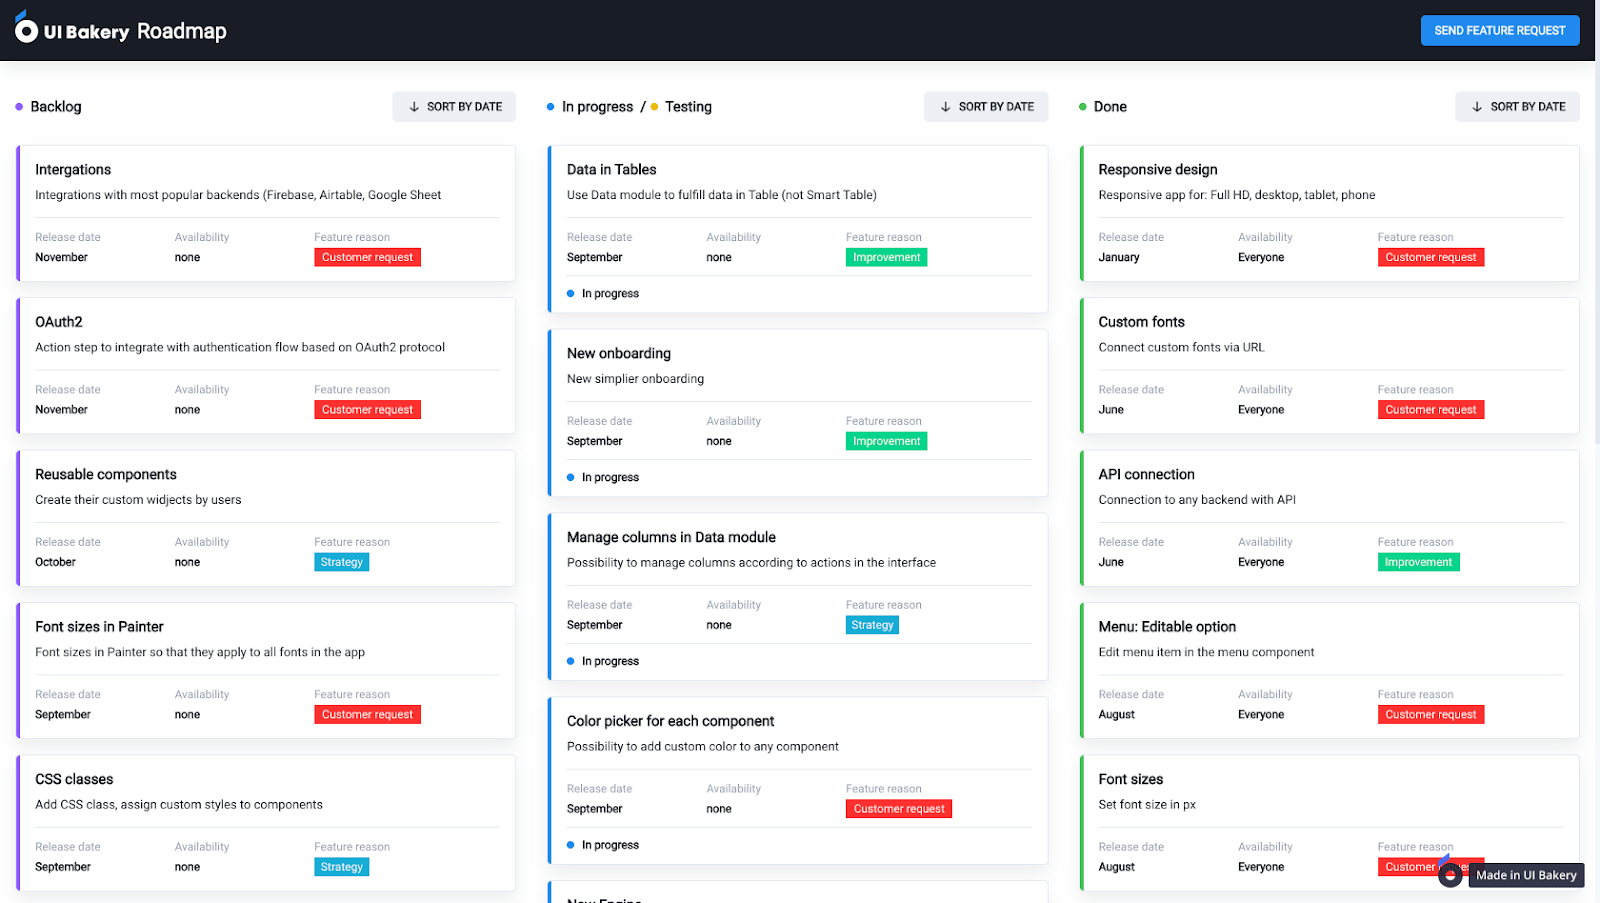 UI Bakery product roadmap template